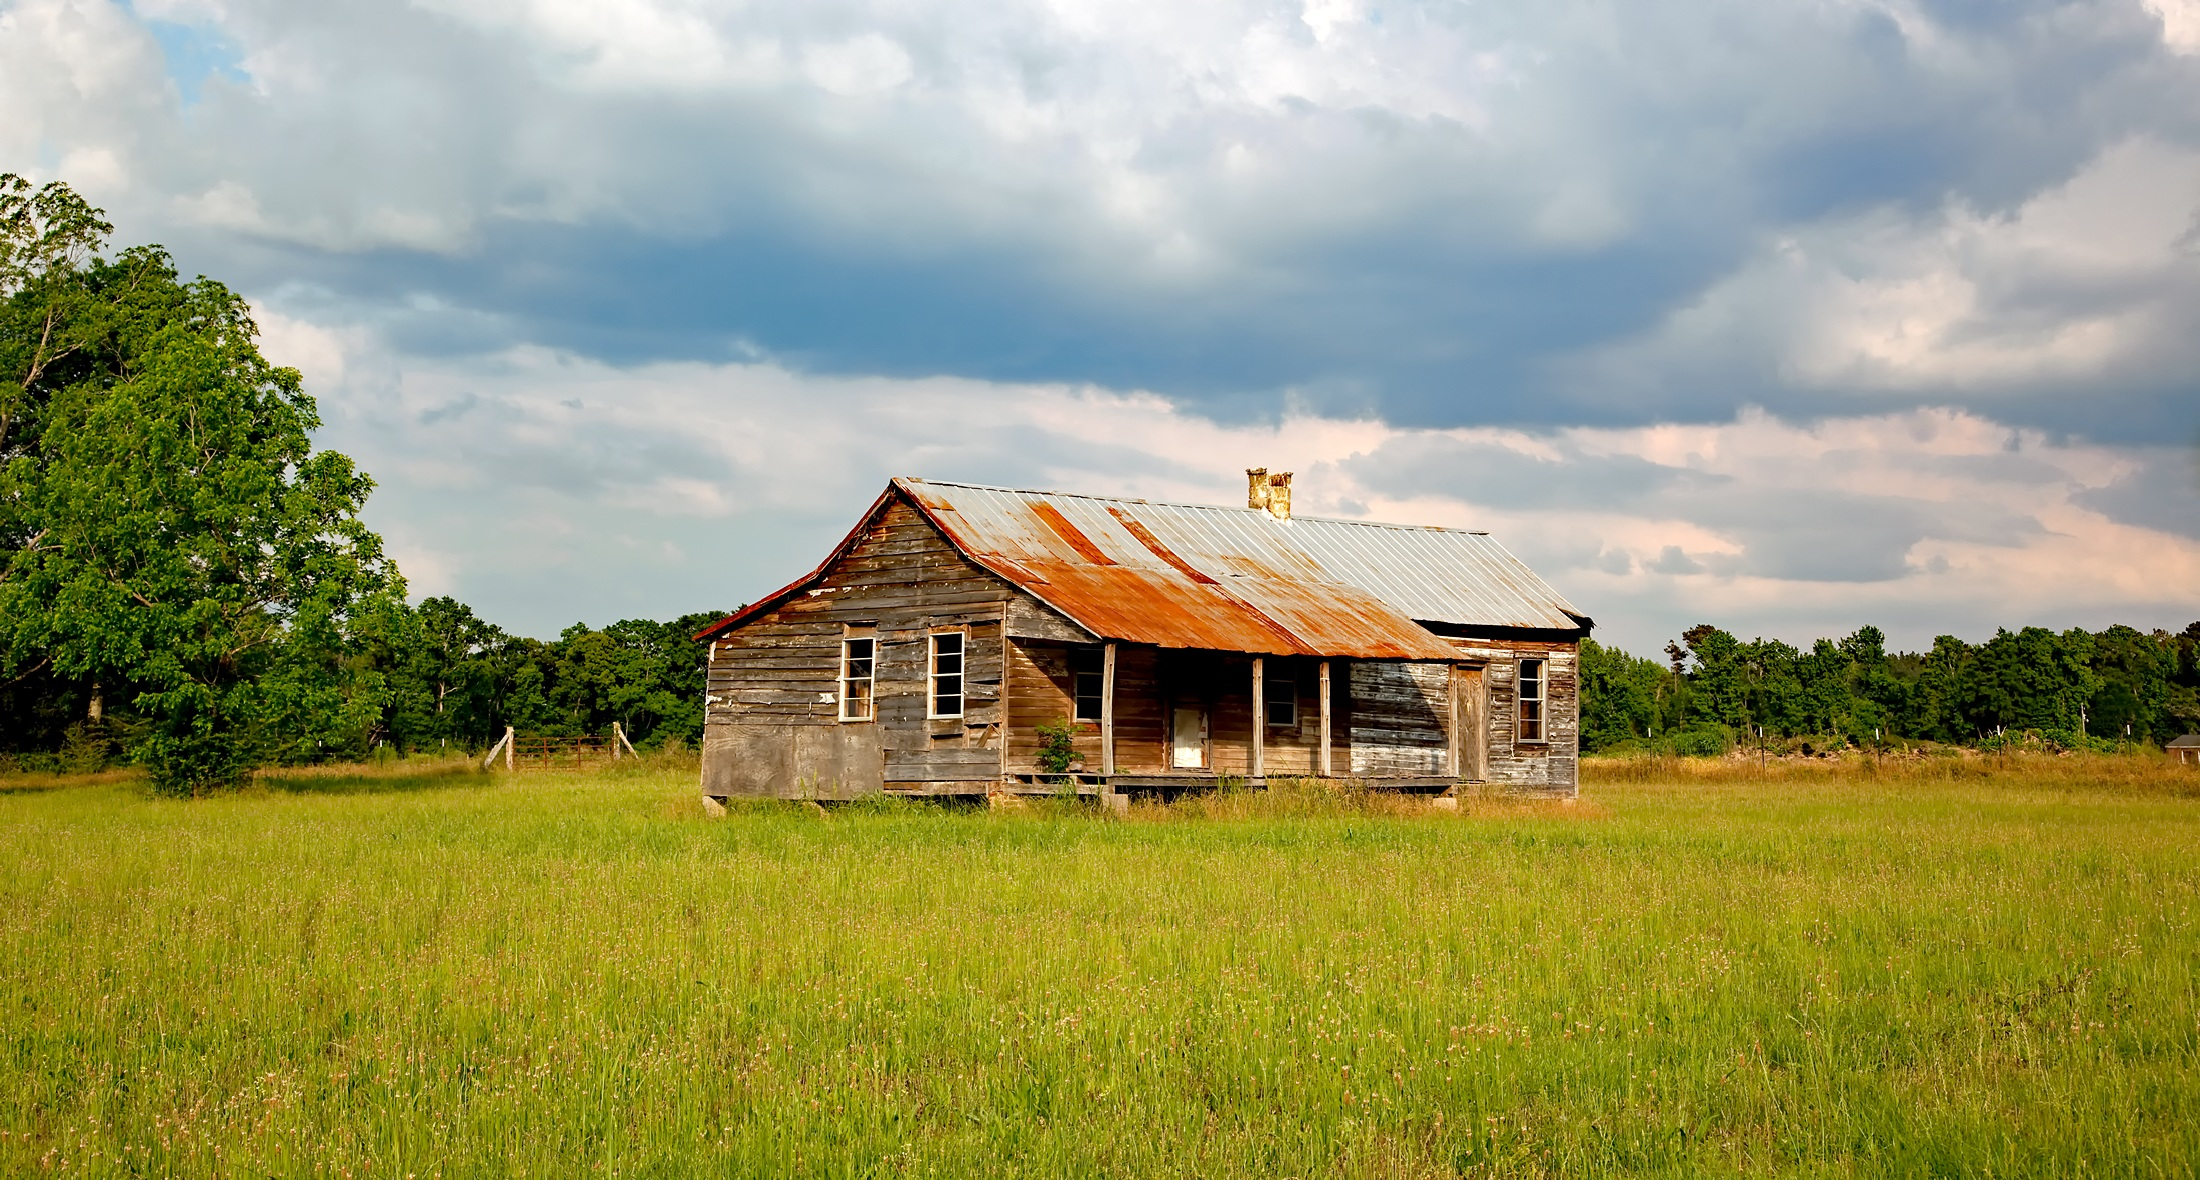 Fall Cottage Wallpaper Gray Scale Photo Of House On Field 183 Free Stock Photo